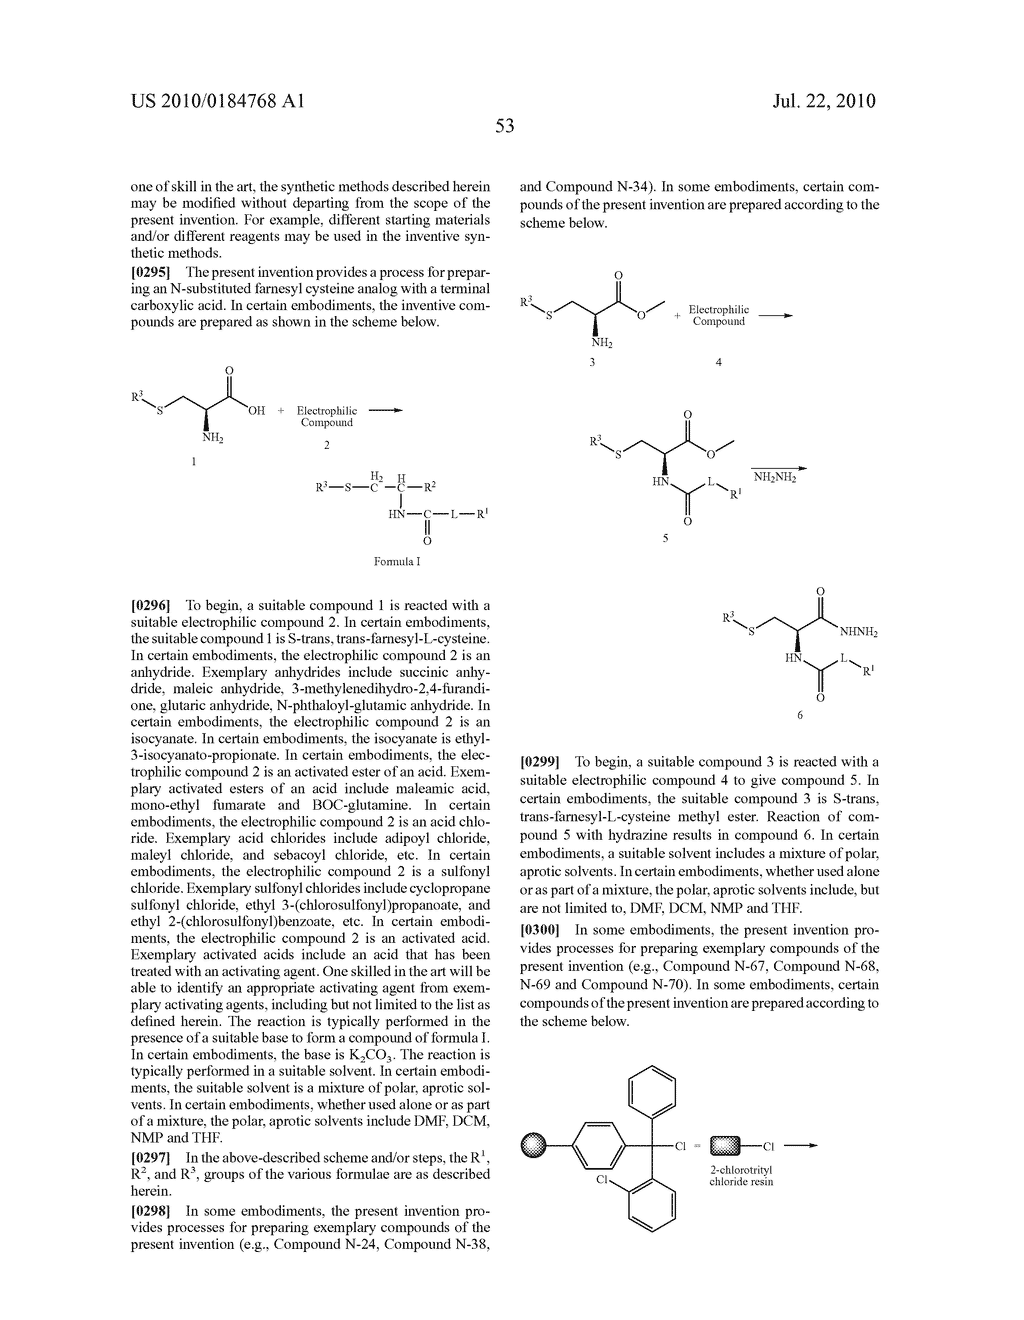 Isoprenyl Compounds and Methods Thereof - diagram, schematic, and image 68